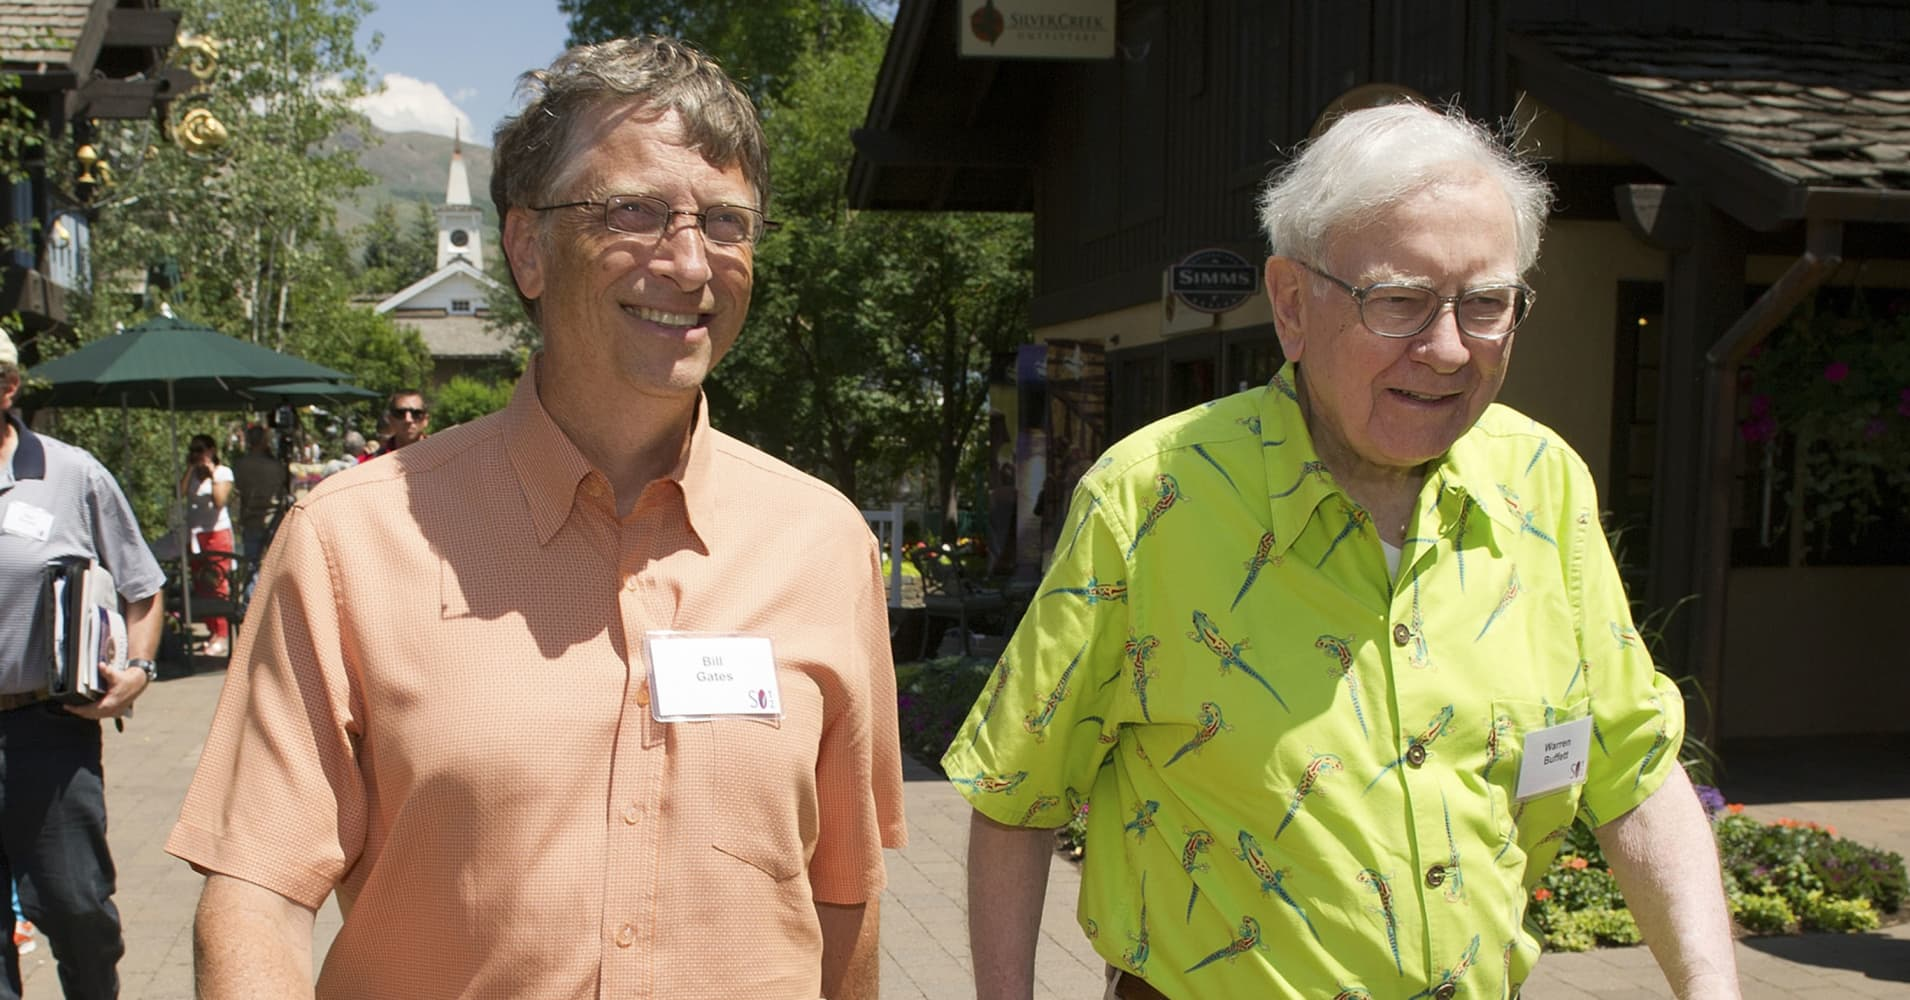 Inspiring Advice Buffett Gates And Cuban Got From Their Dads